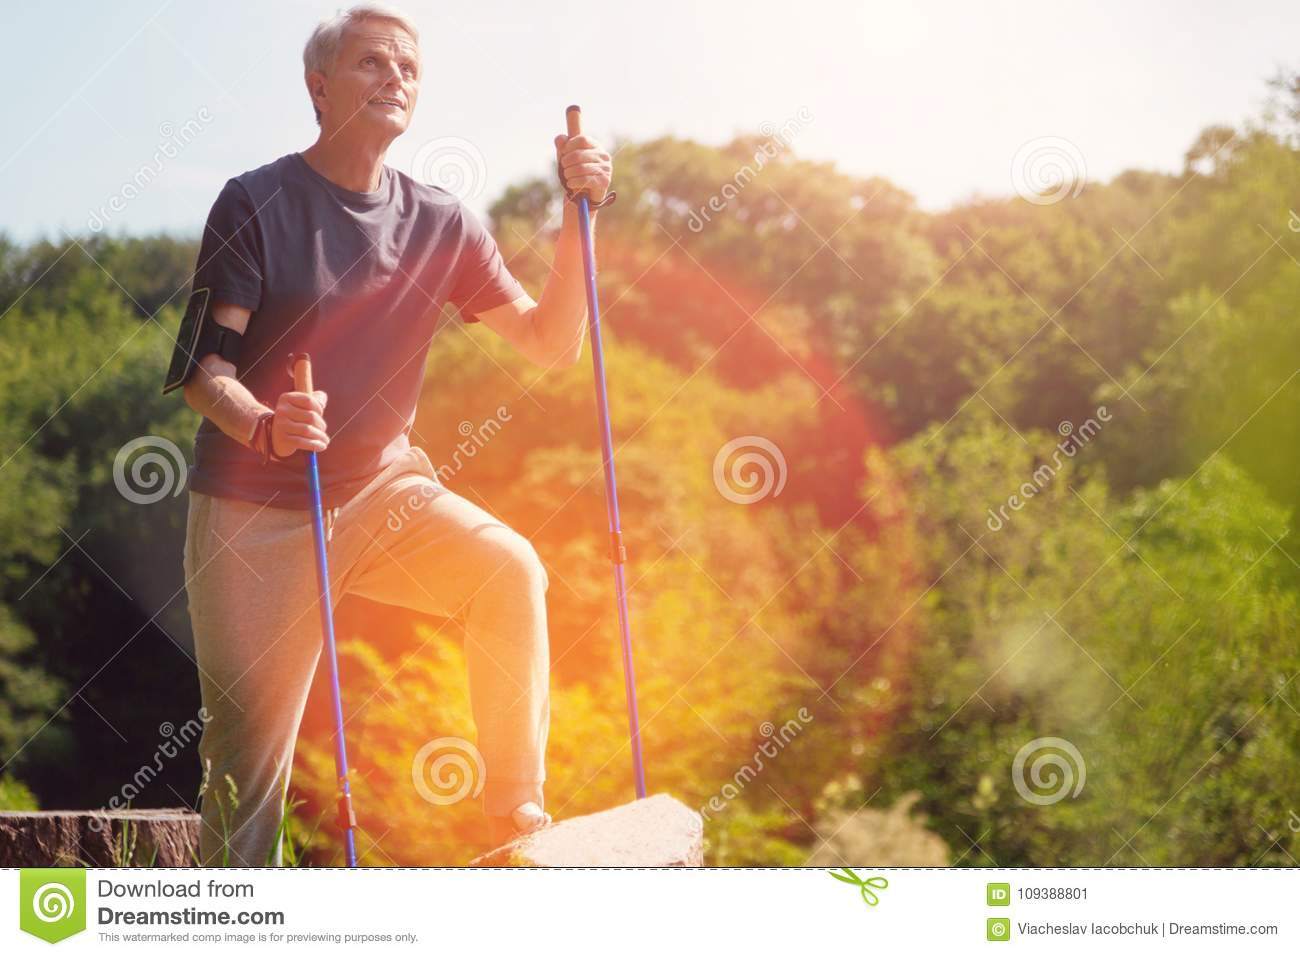 Positive elderly man reaching his destination